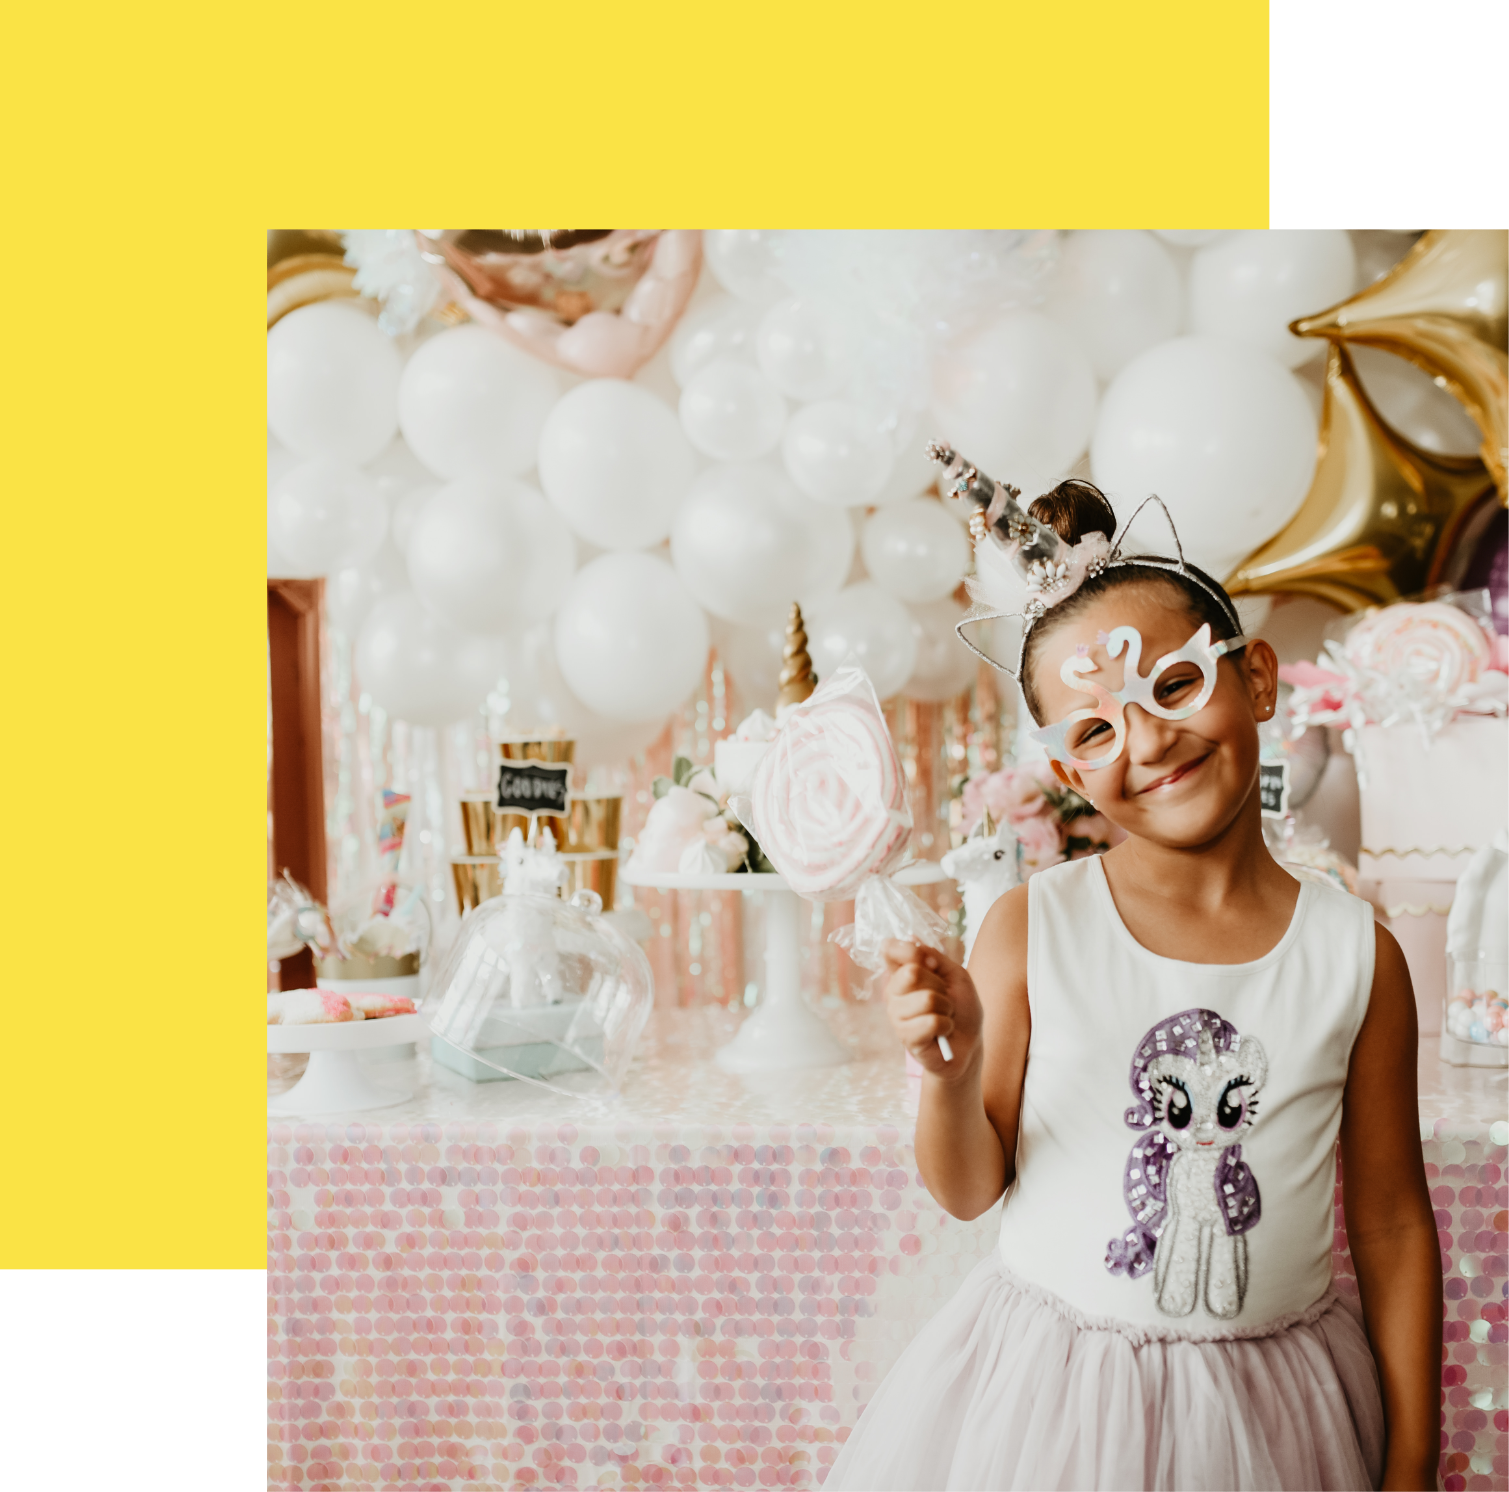 Girl with mask in front of party table